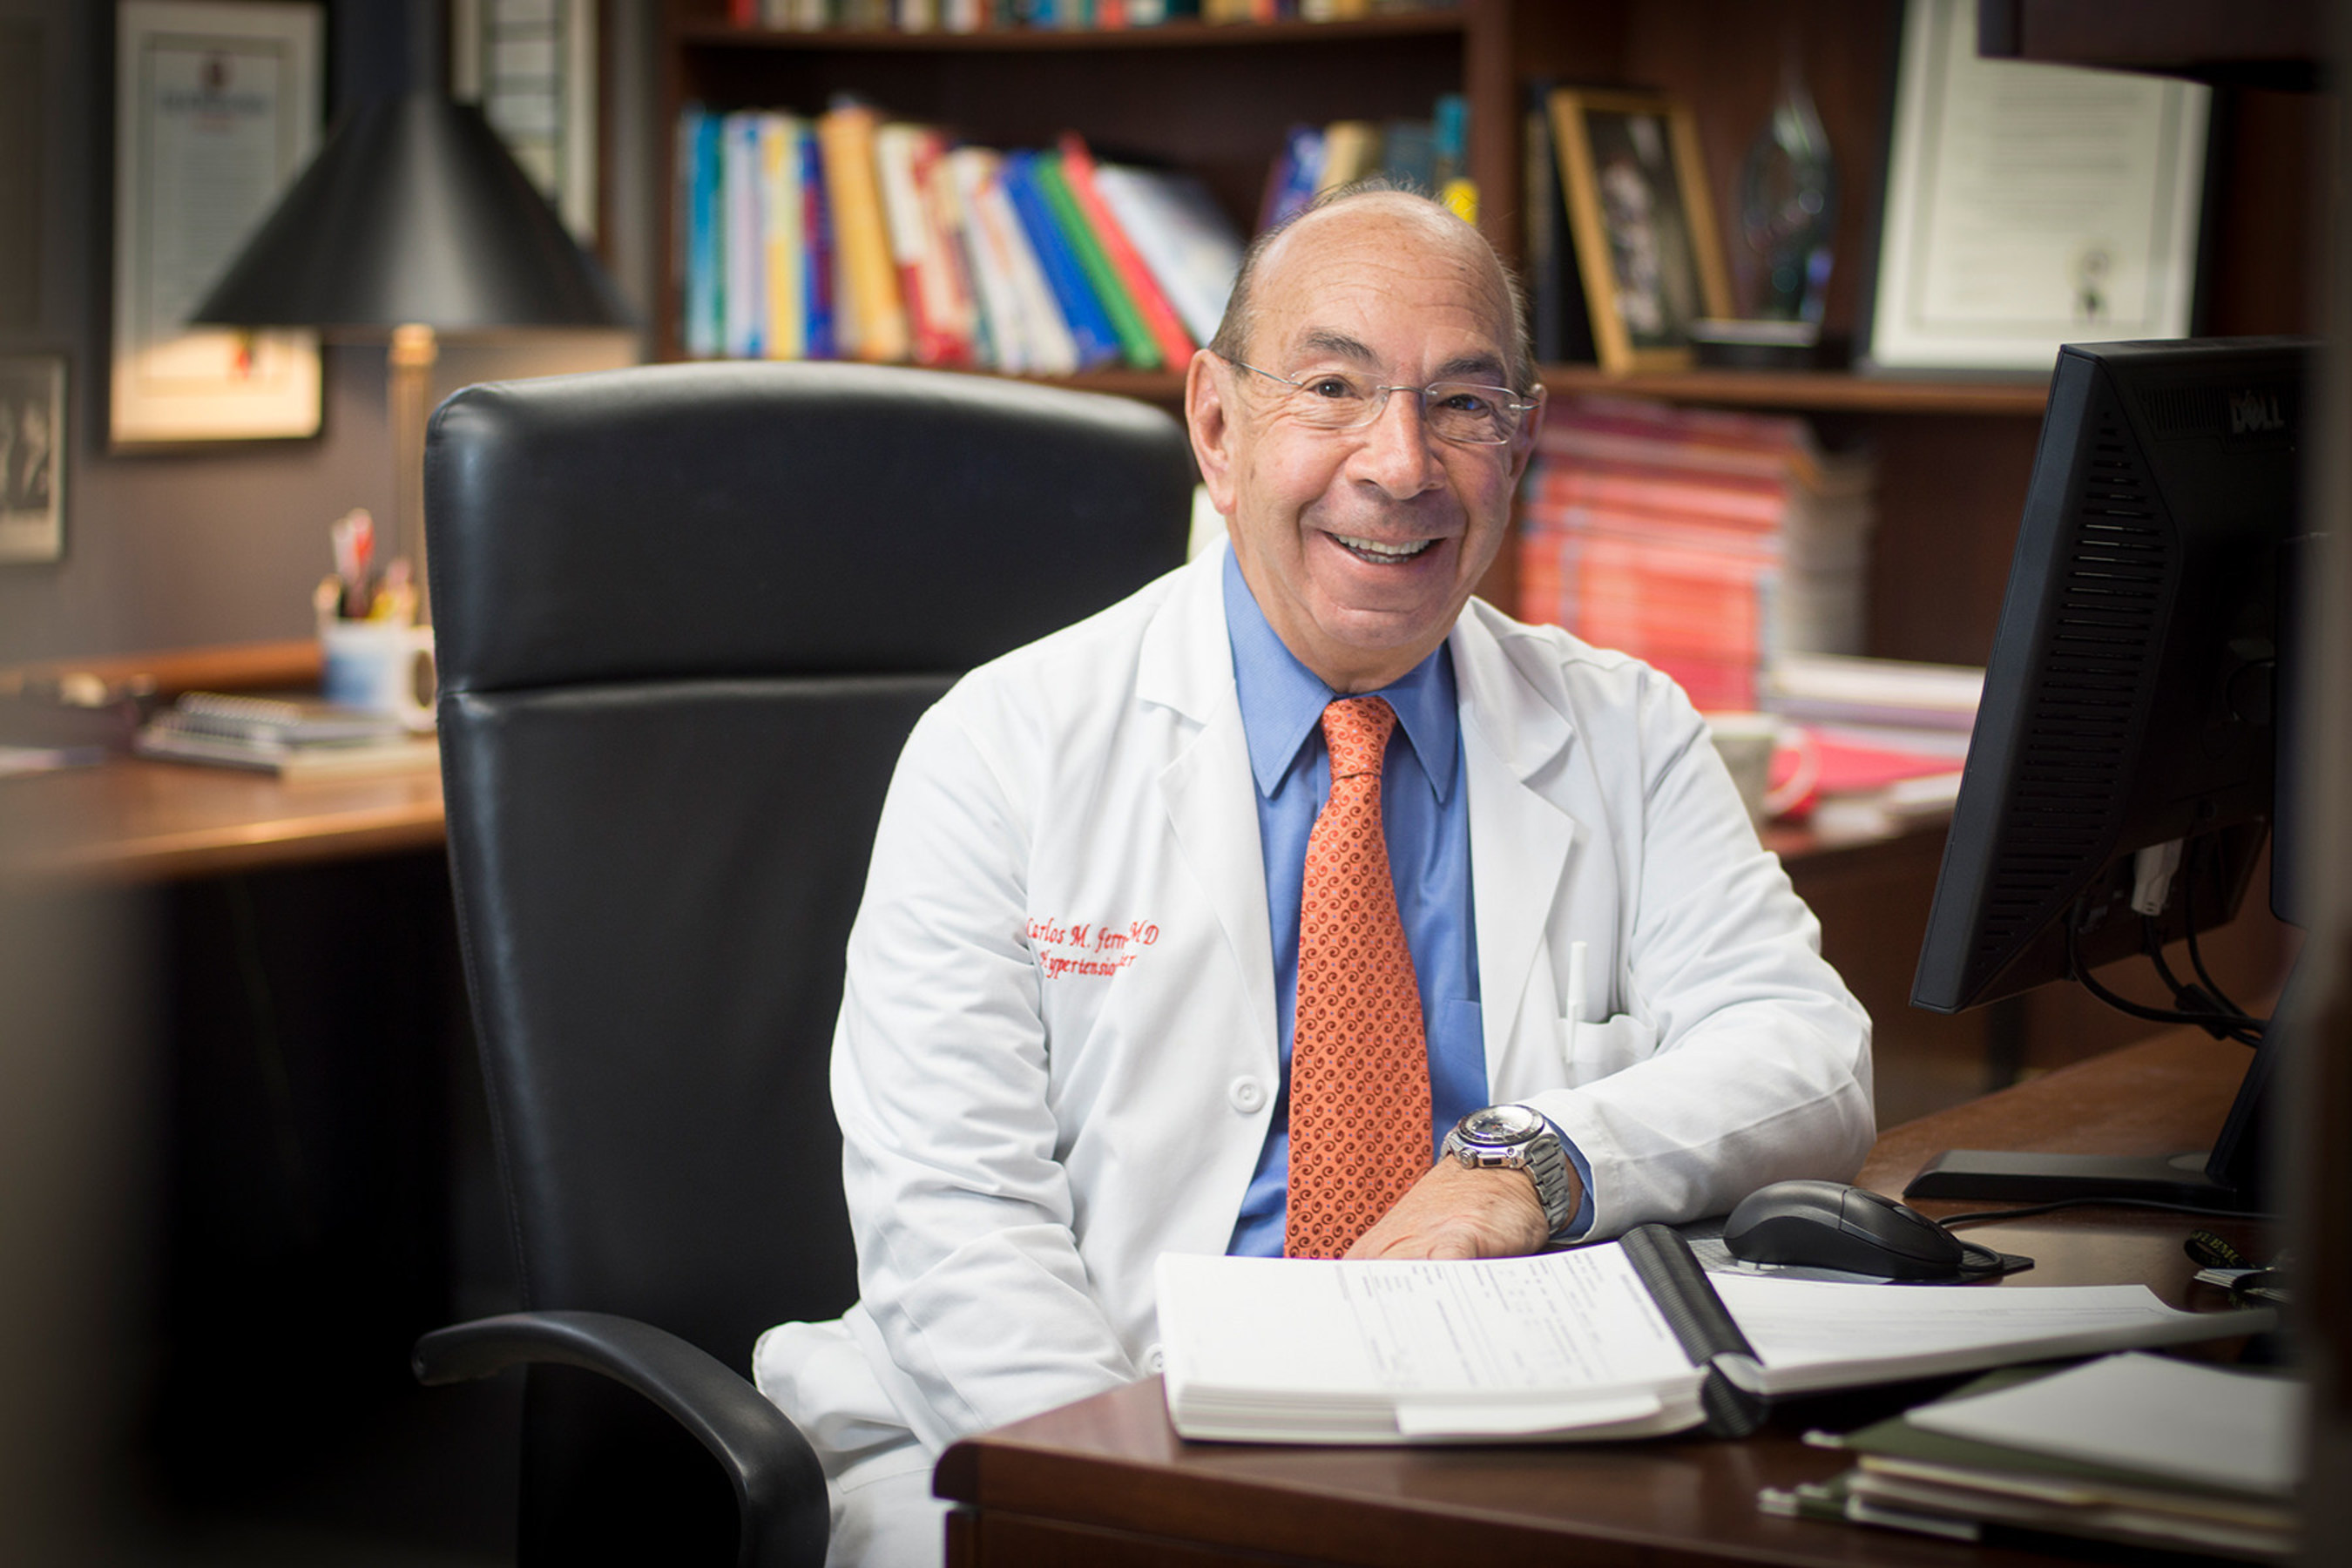 Dr. Carlos M. Ferrario, professor of surgery and founder of the Hypertension and Vascular Research Center at ...